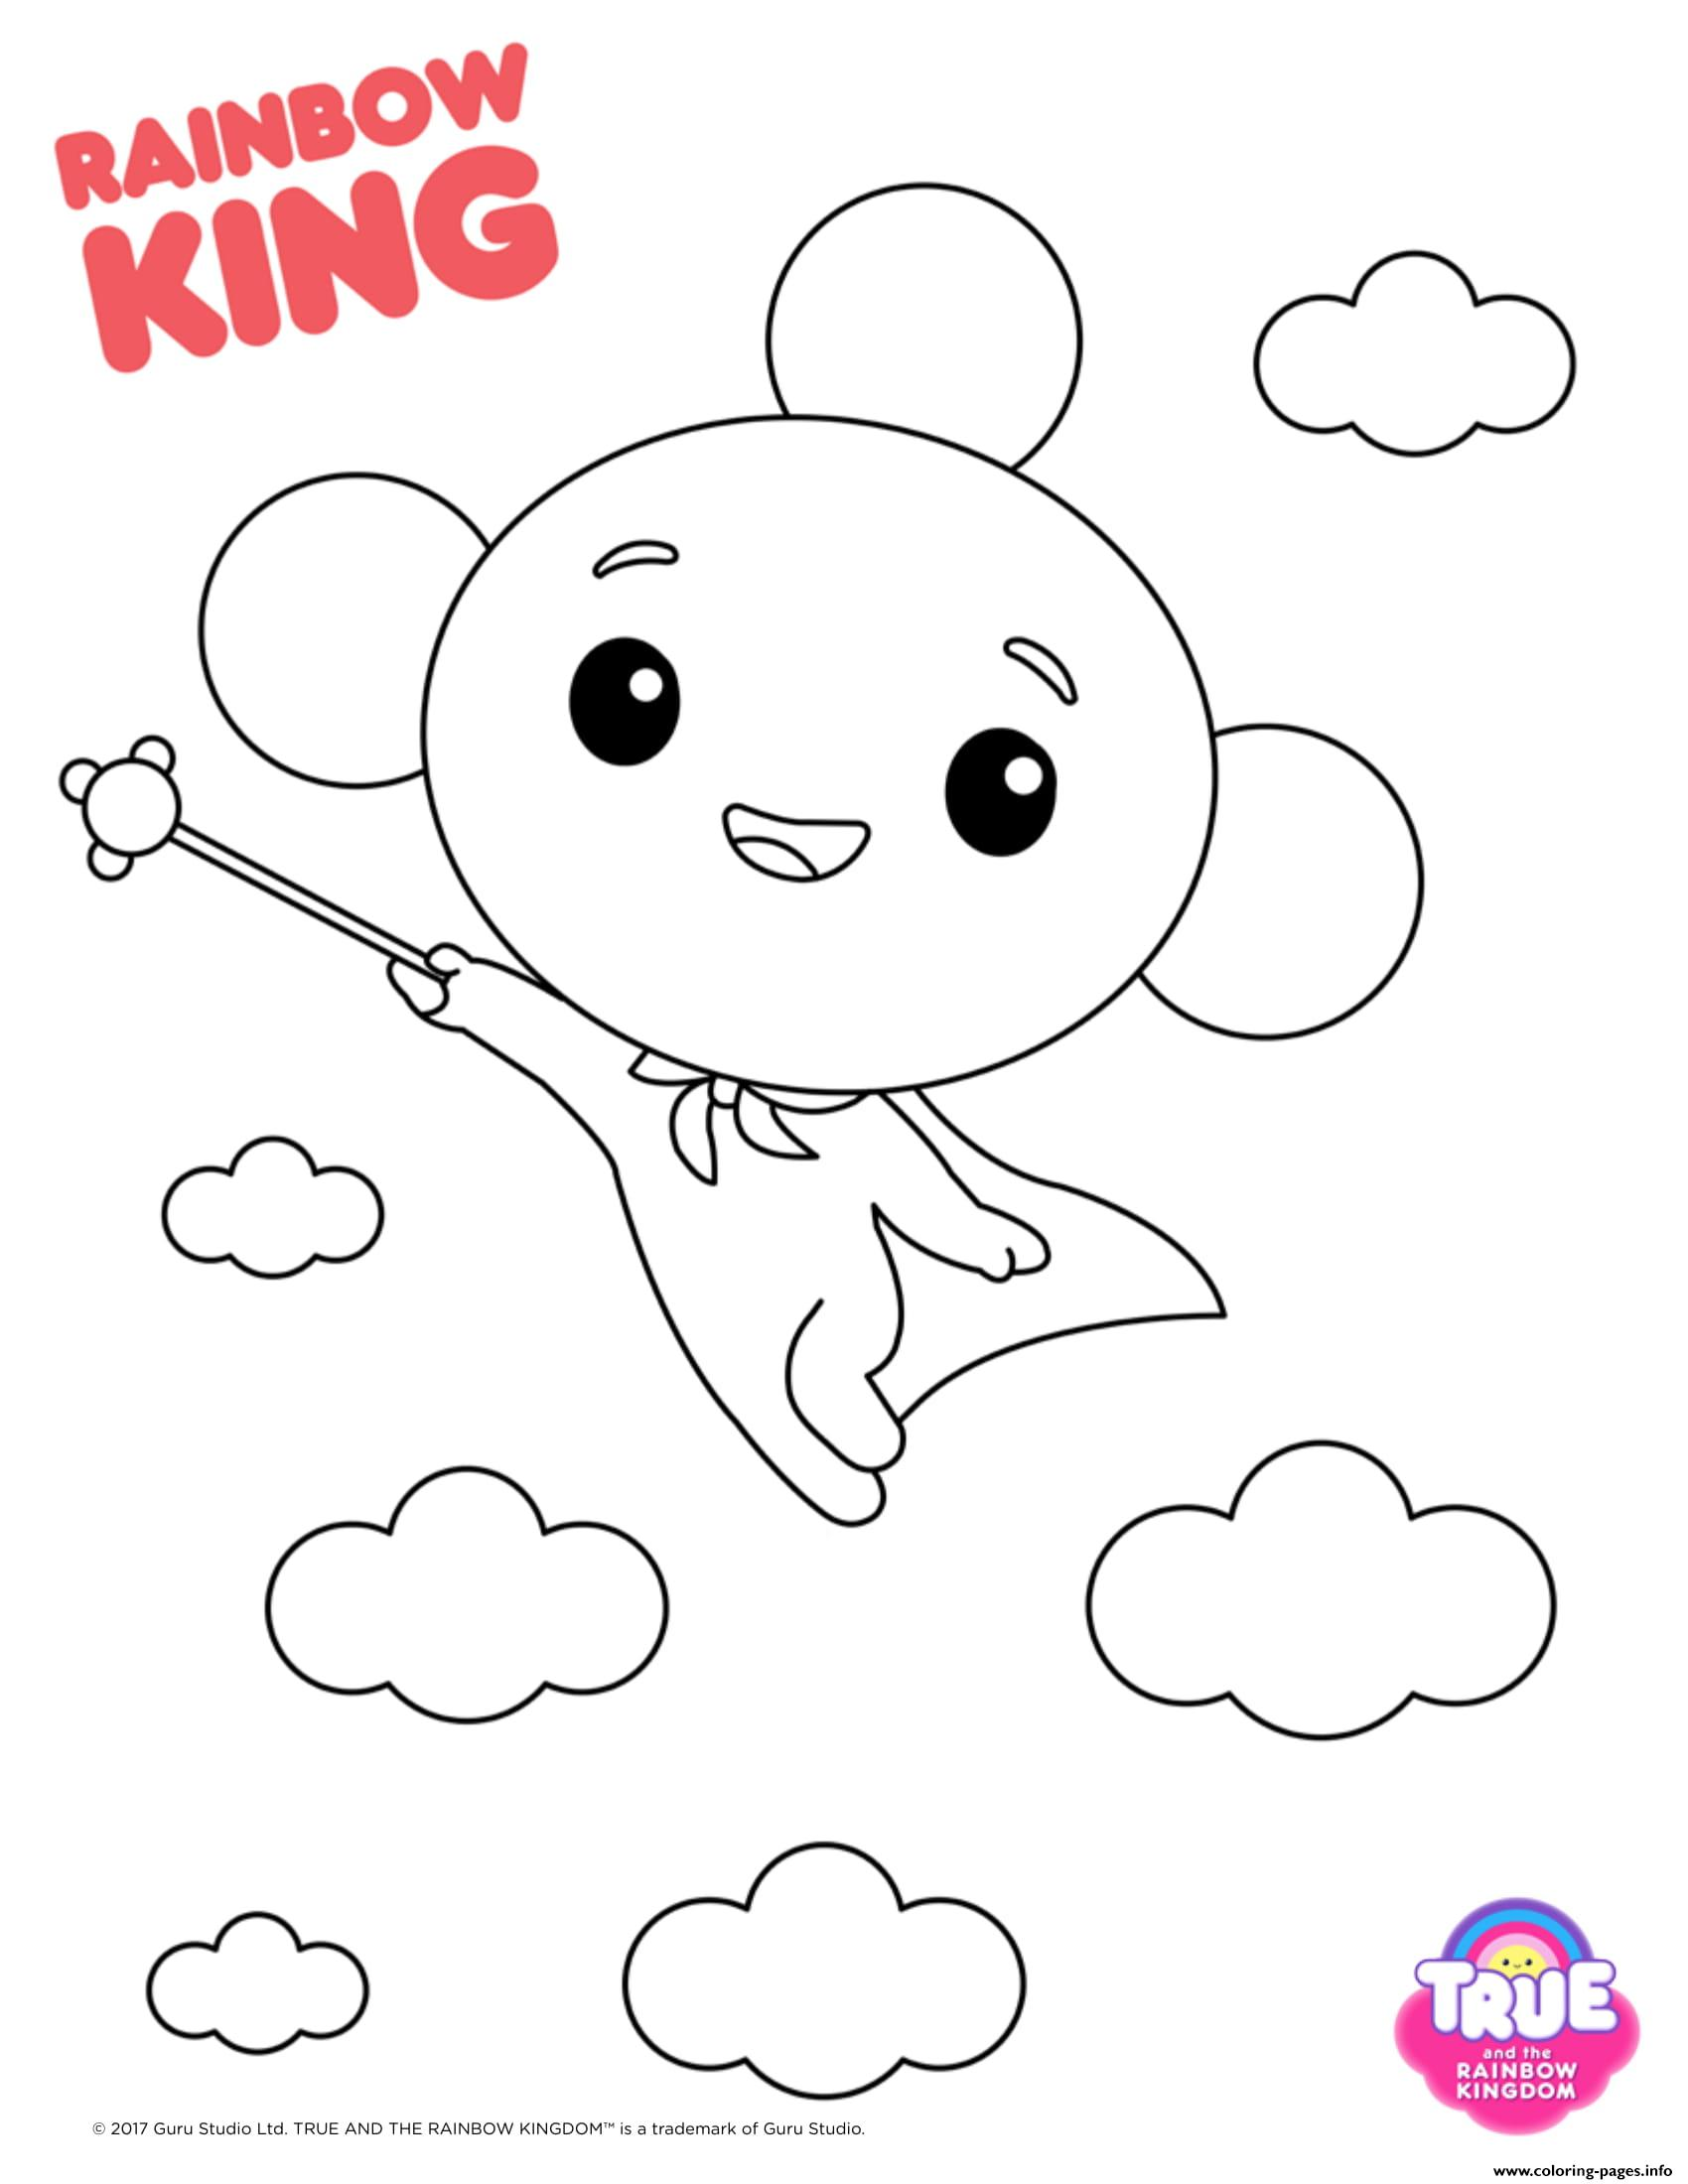 Rainbow king 1 true and the rainbow kingdom coloring pages printable